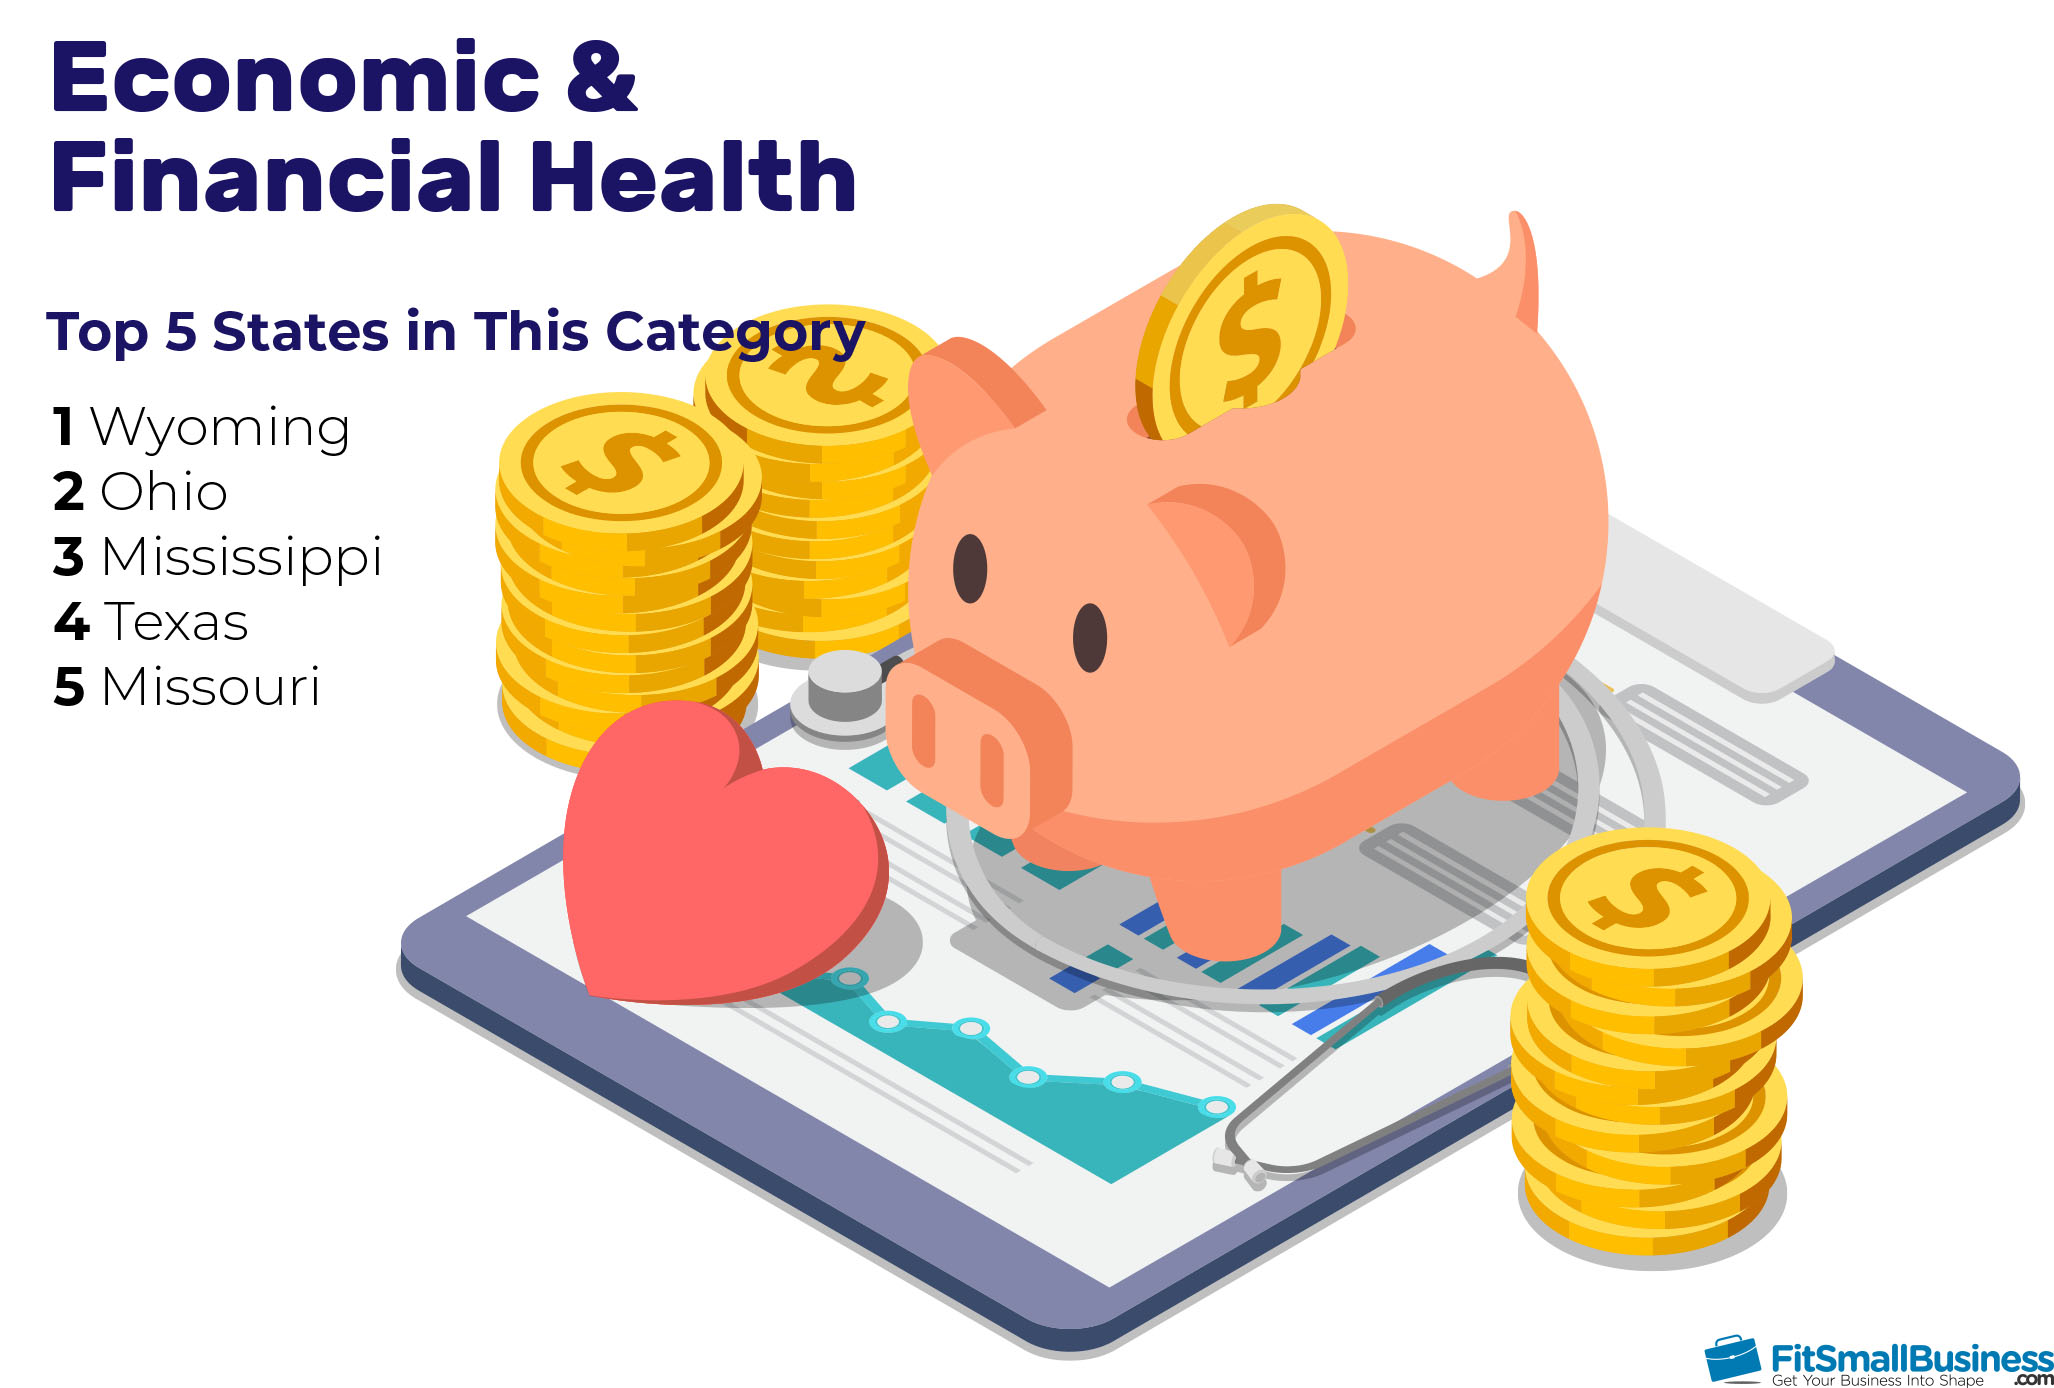 Economic & Financial Health